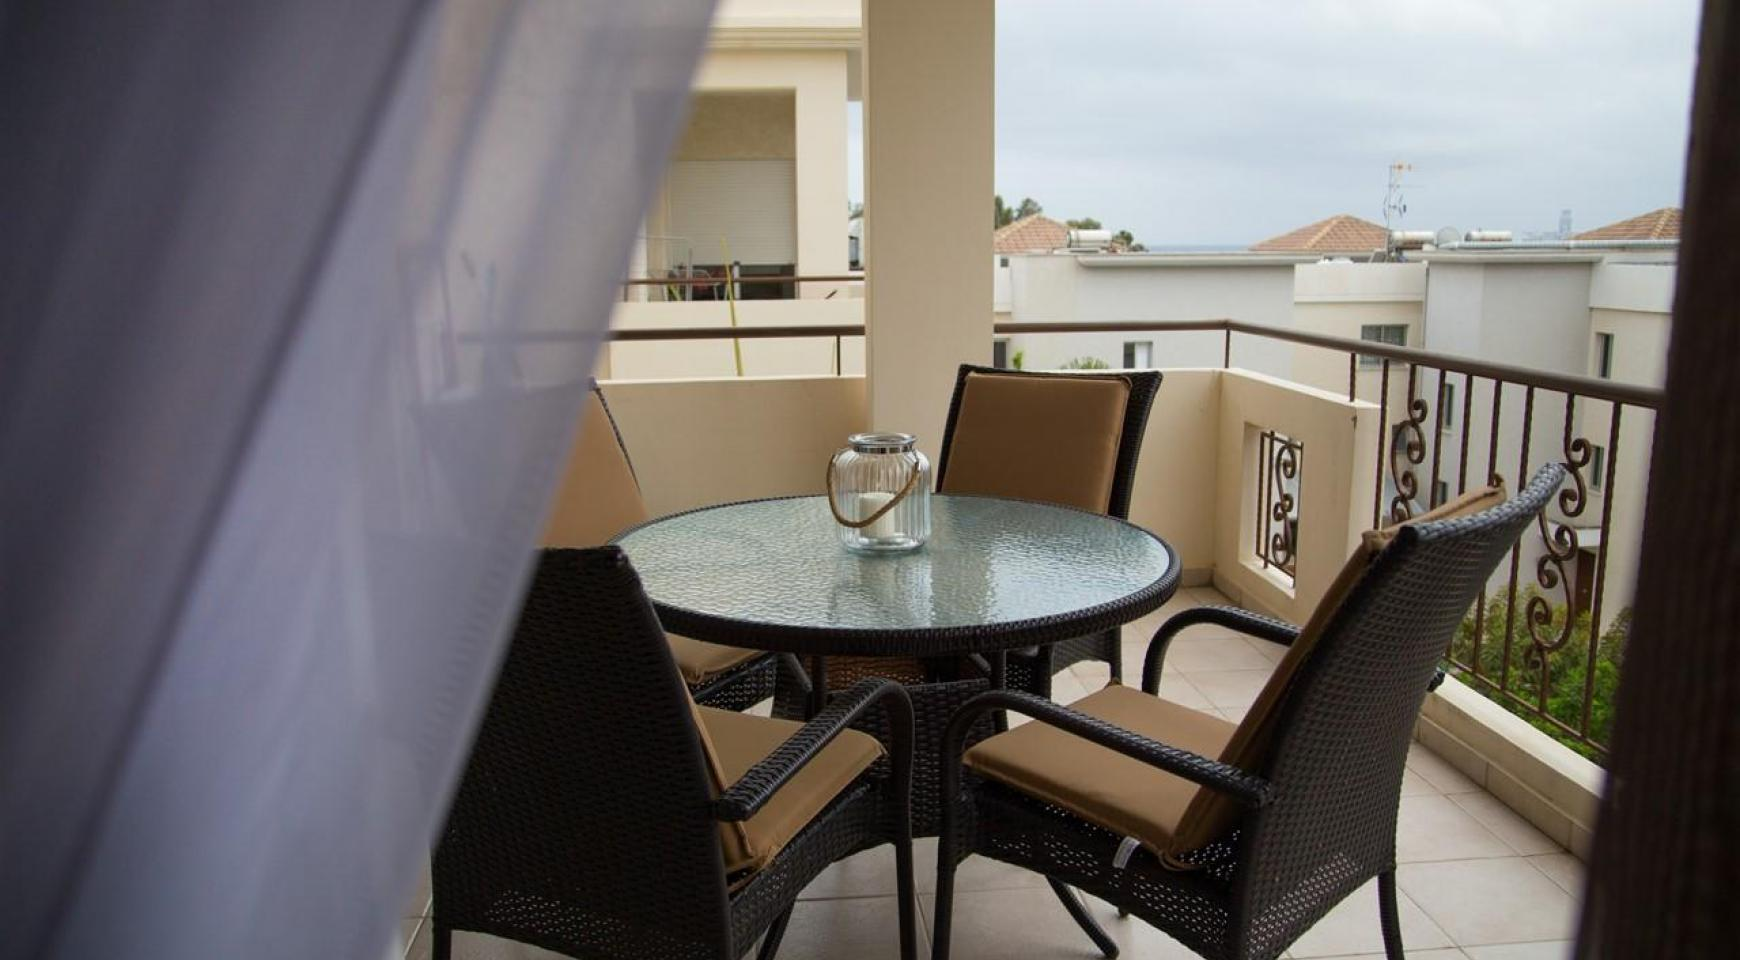 Luxury 2 Bedroom Apartment Mesogios Iris 304 in the Tourist area near the Beach - 25